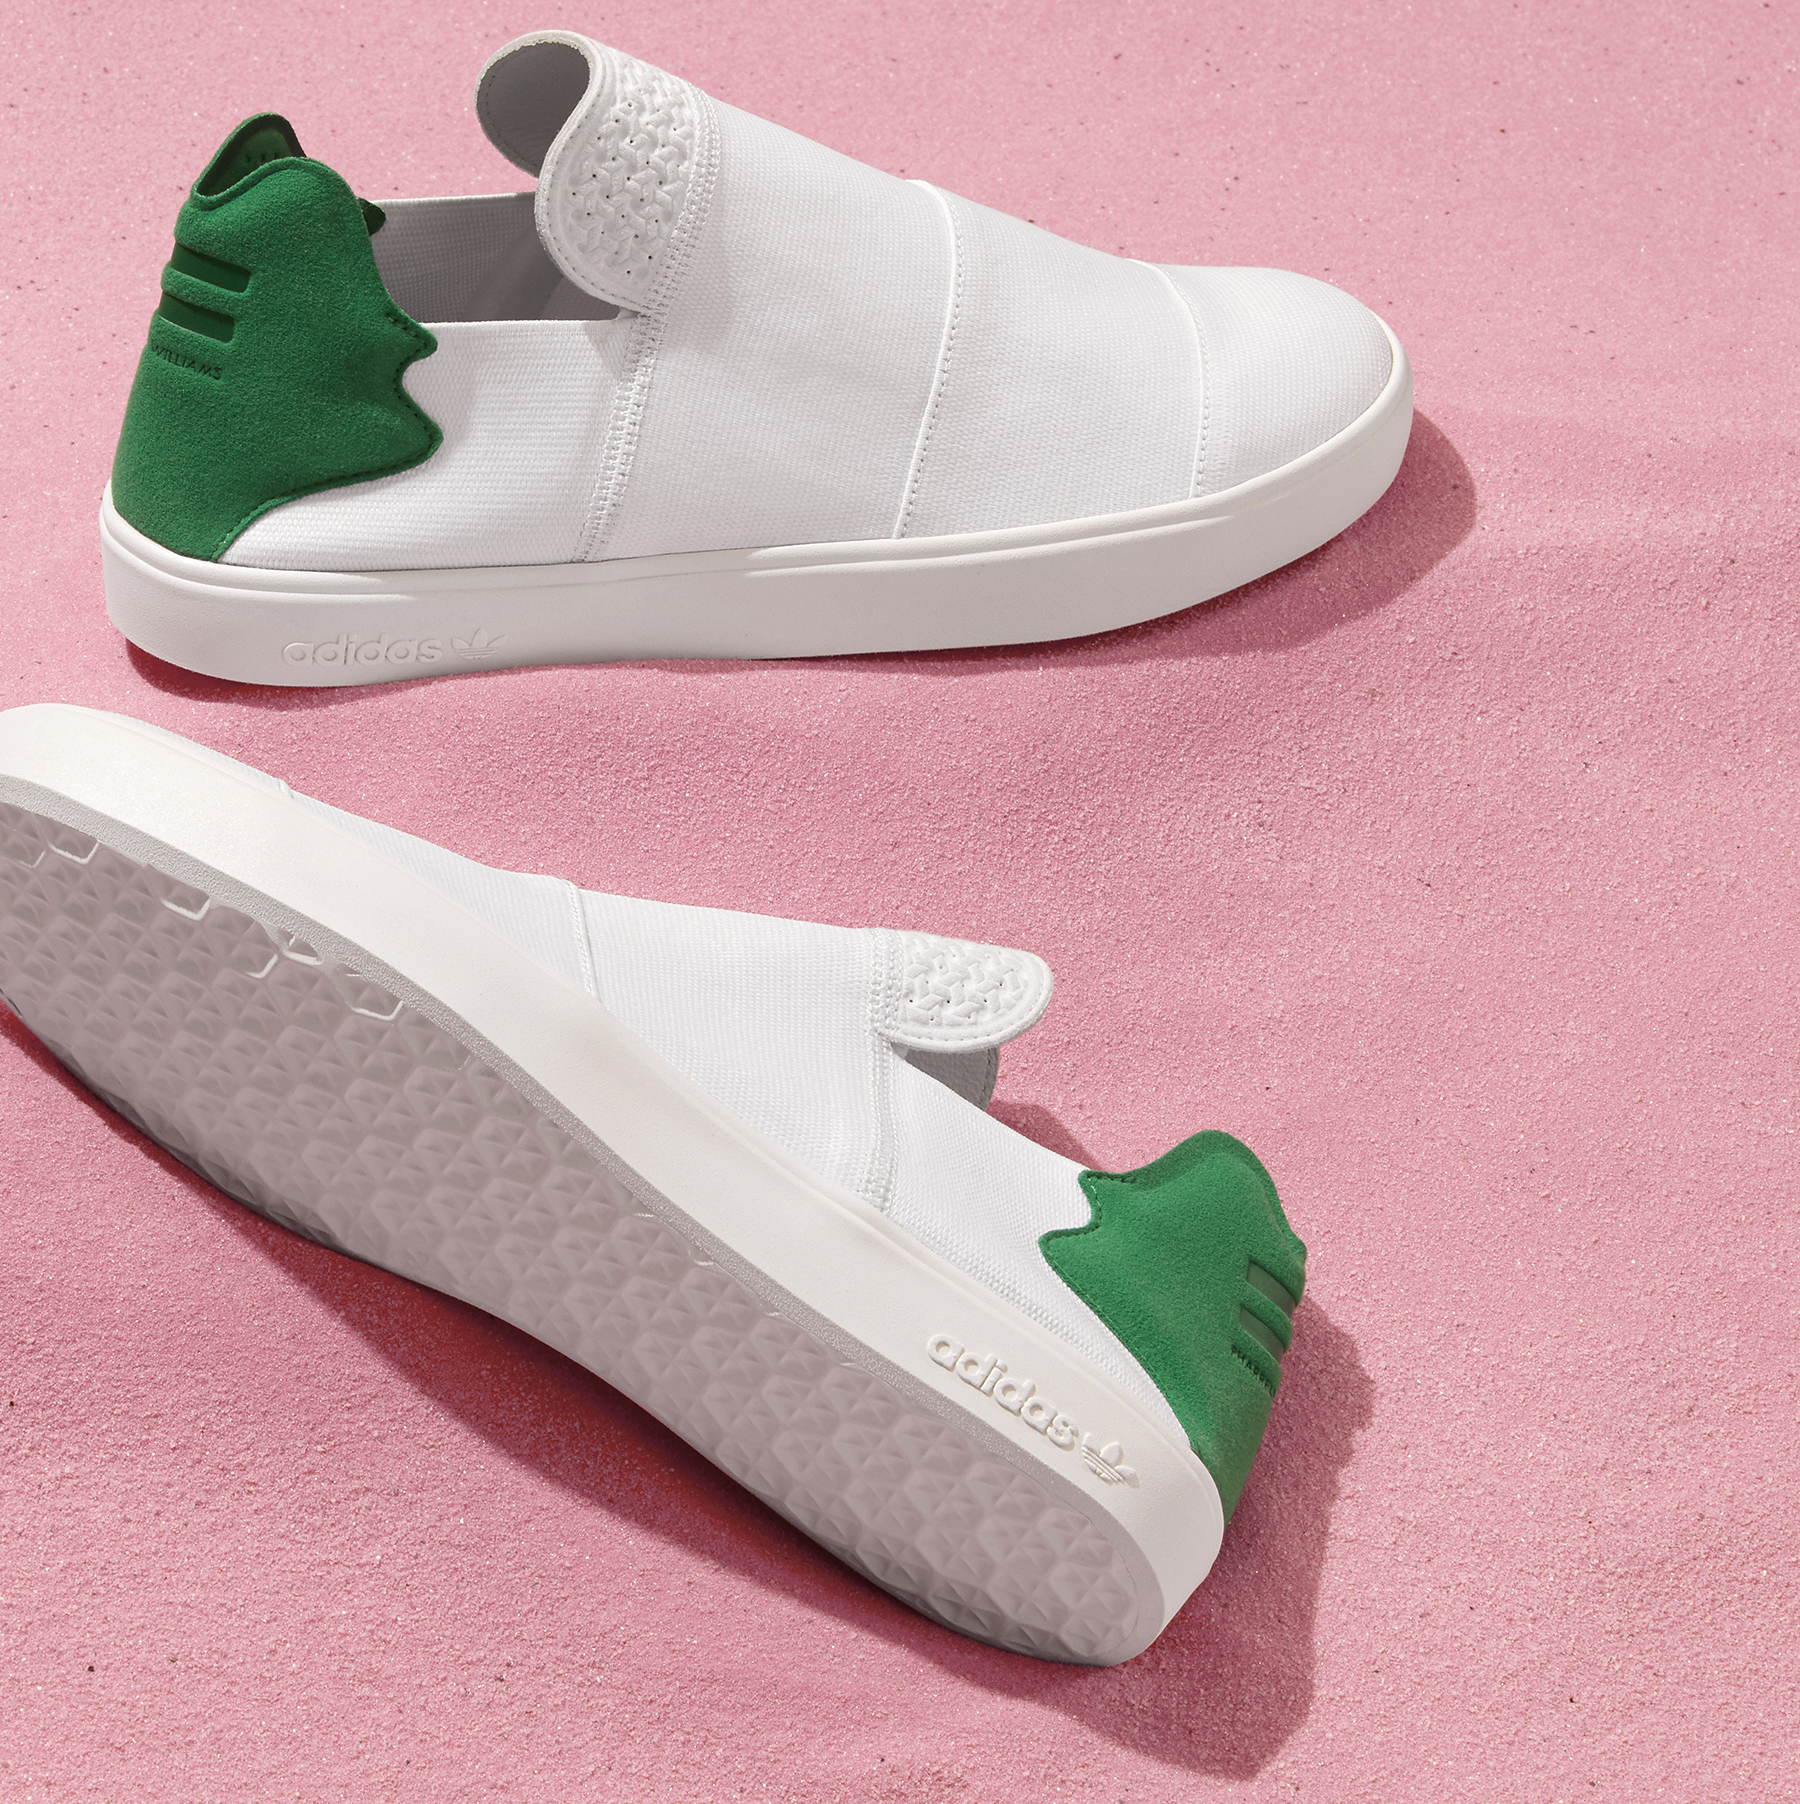 buy popular e9573 3dffb The Elastic Slip On sneakers in white. Photo by Viviane Sassen for Adidas.